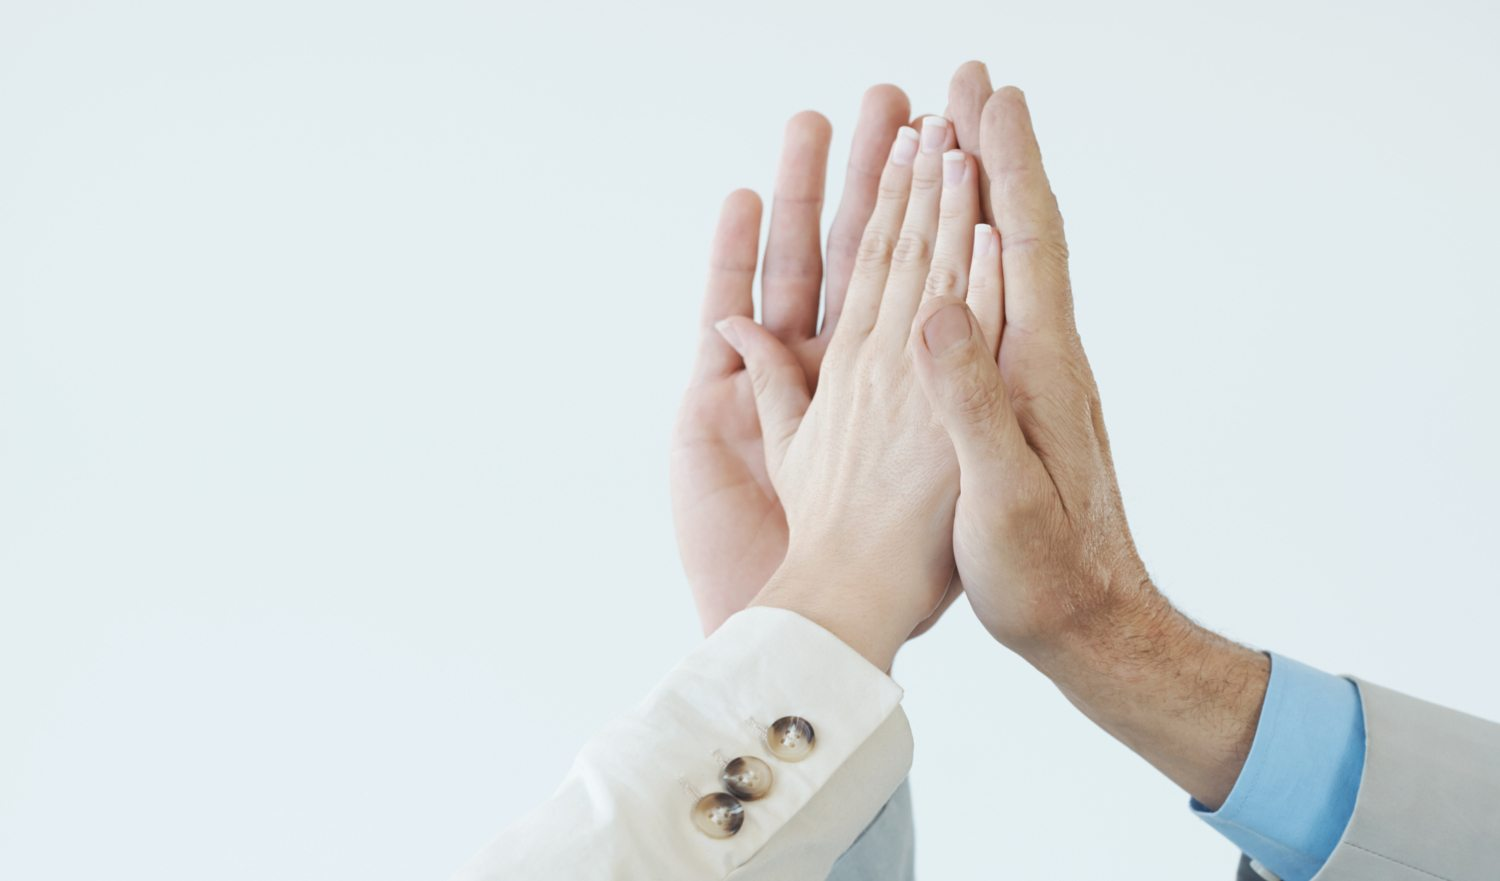 Business people celebrating another success deal with a high-five